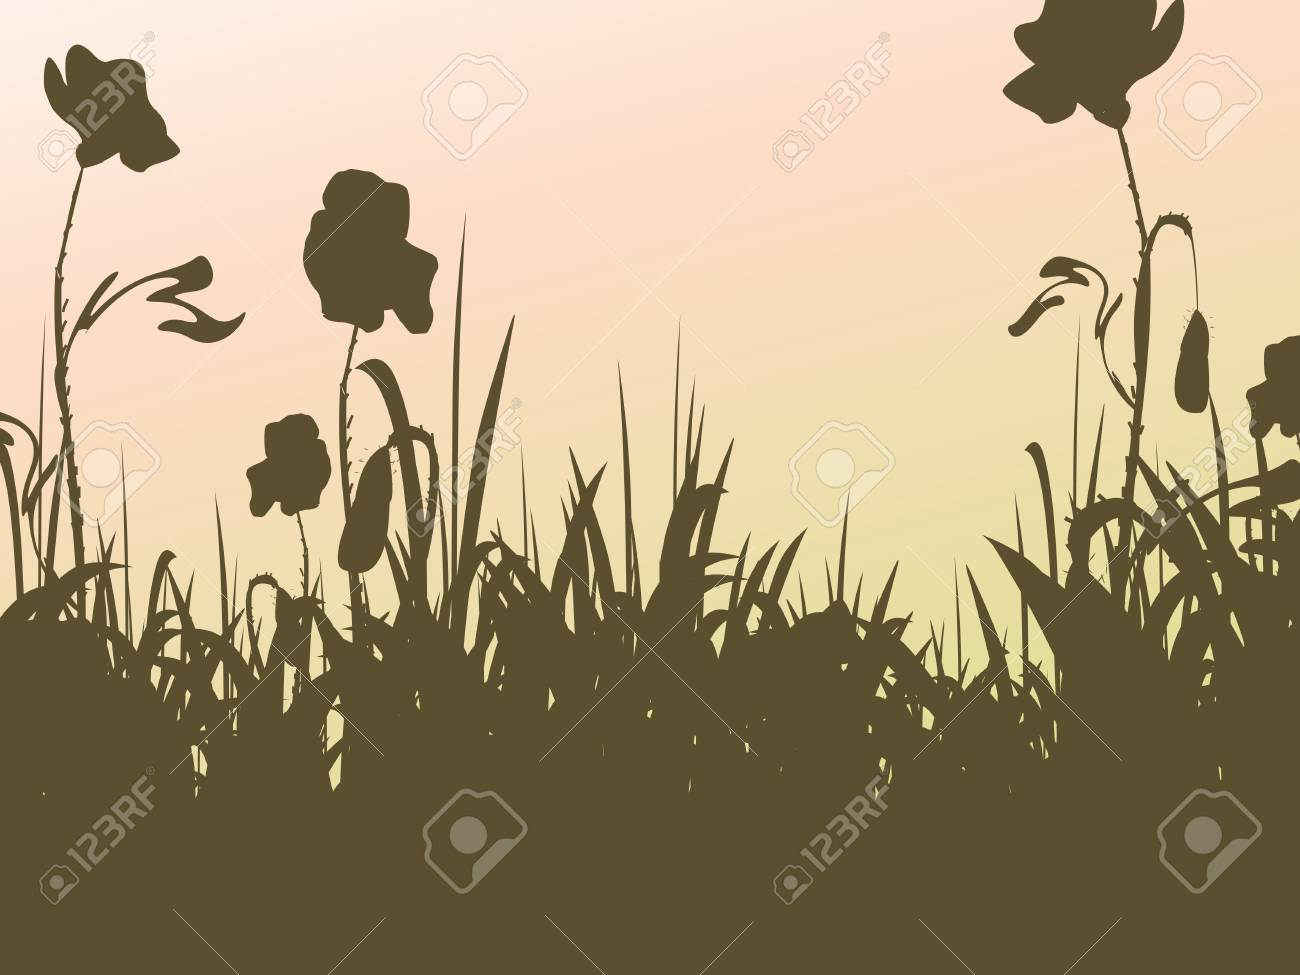 vector floral silhouettes backgrounds Stock Vector - 4526339